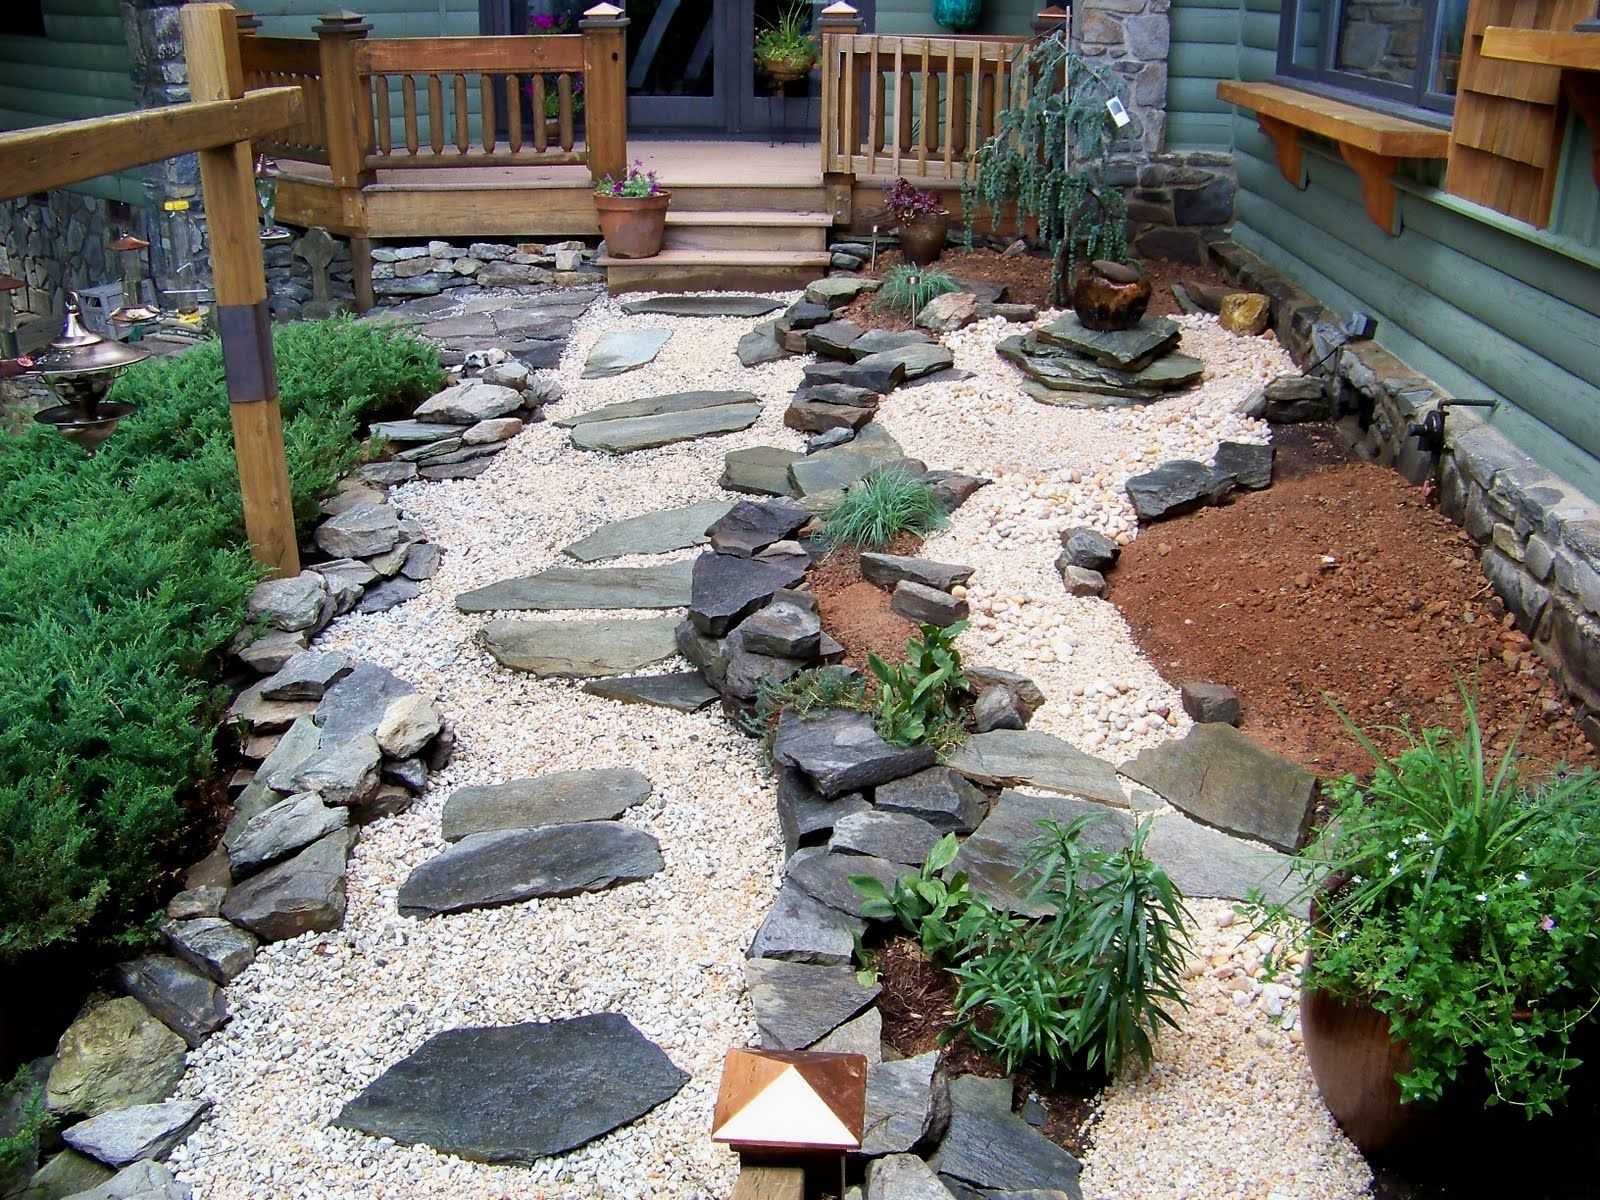 Luxurious Exterior House With Japanese Garden Design With Rock Also Small  Green Plants